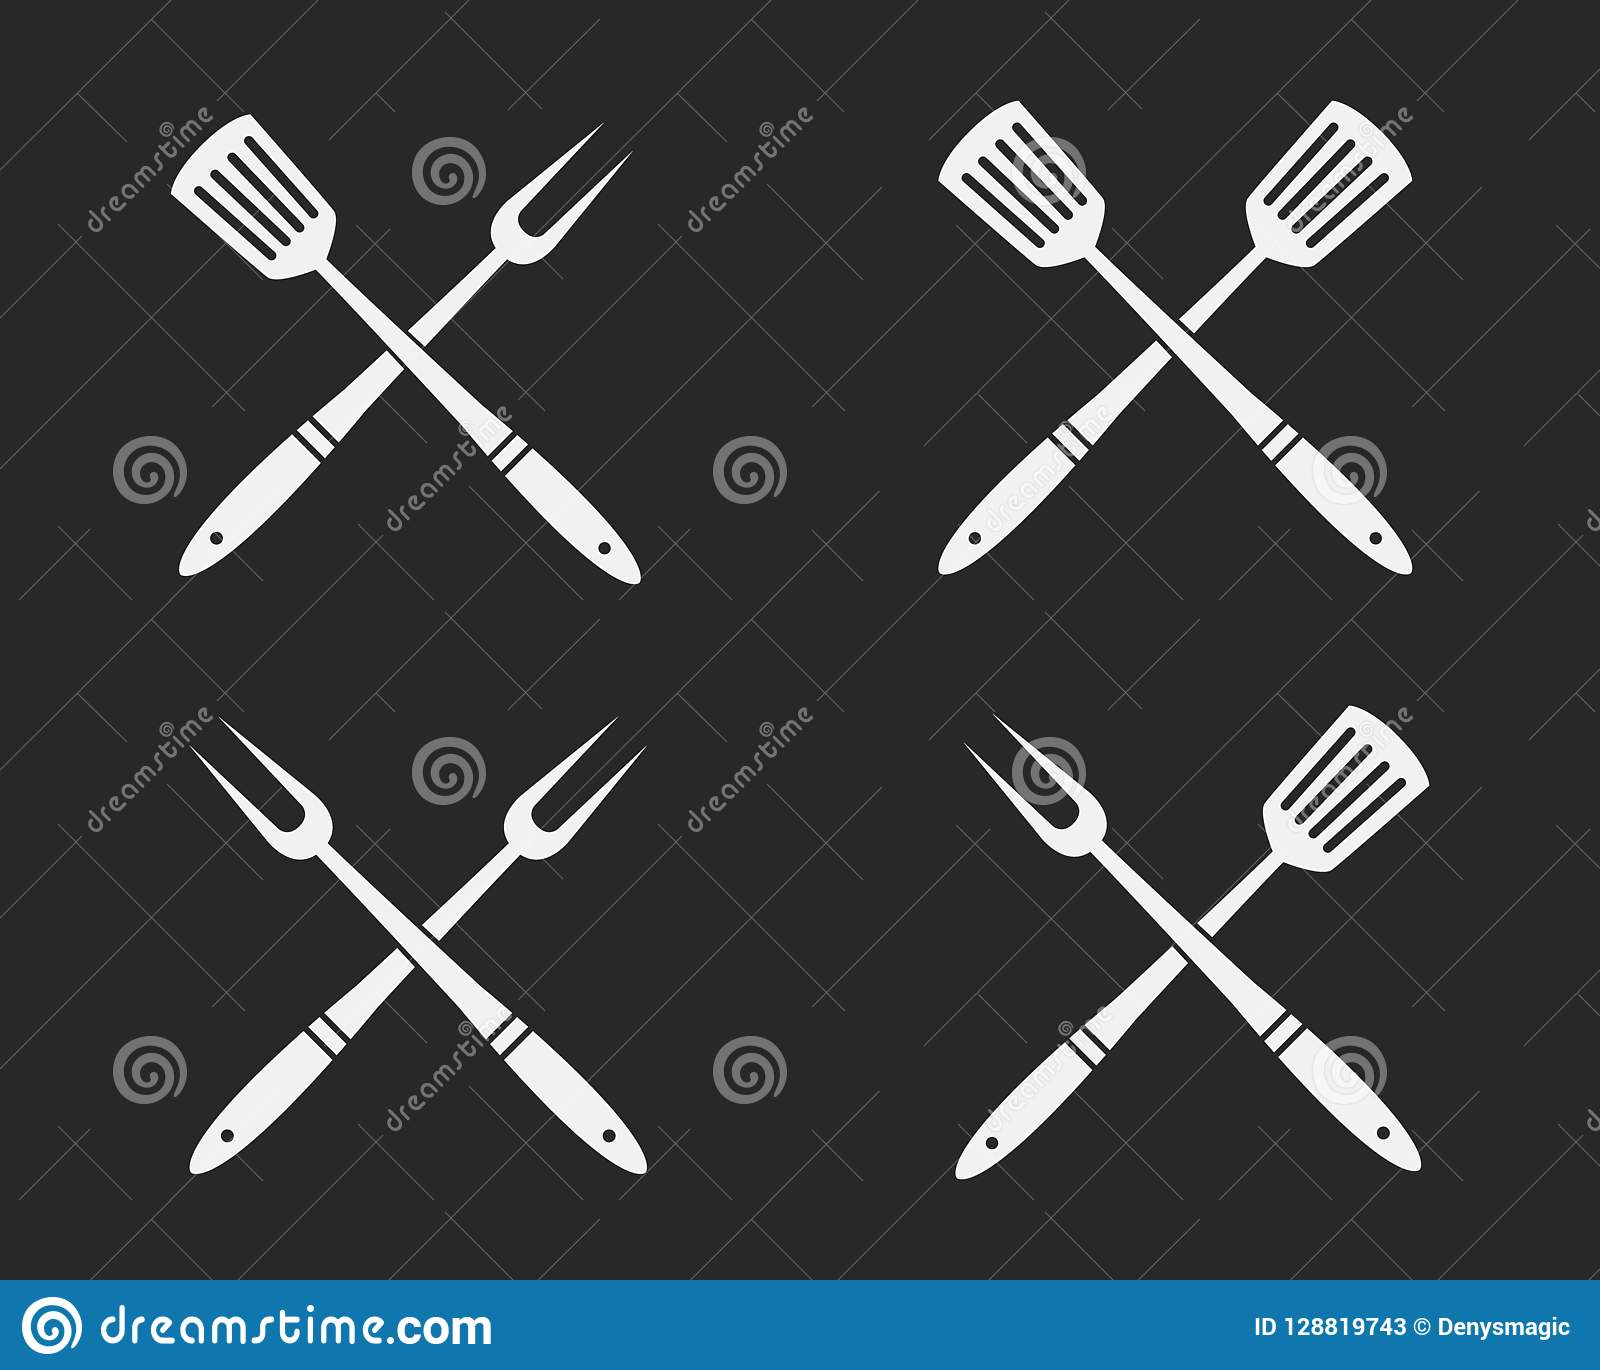 Set of BBQ tools icons. Crossed Barbeque fork and spatula. Elements for design logos, emblems, badges. Vector illustration